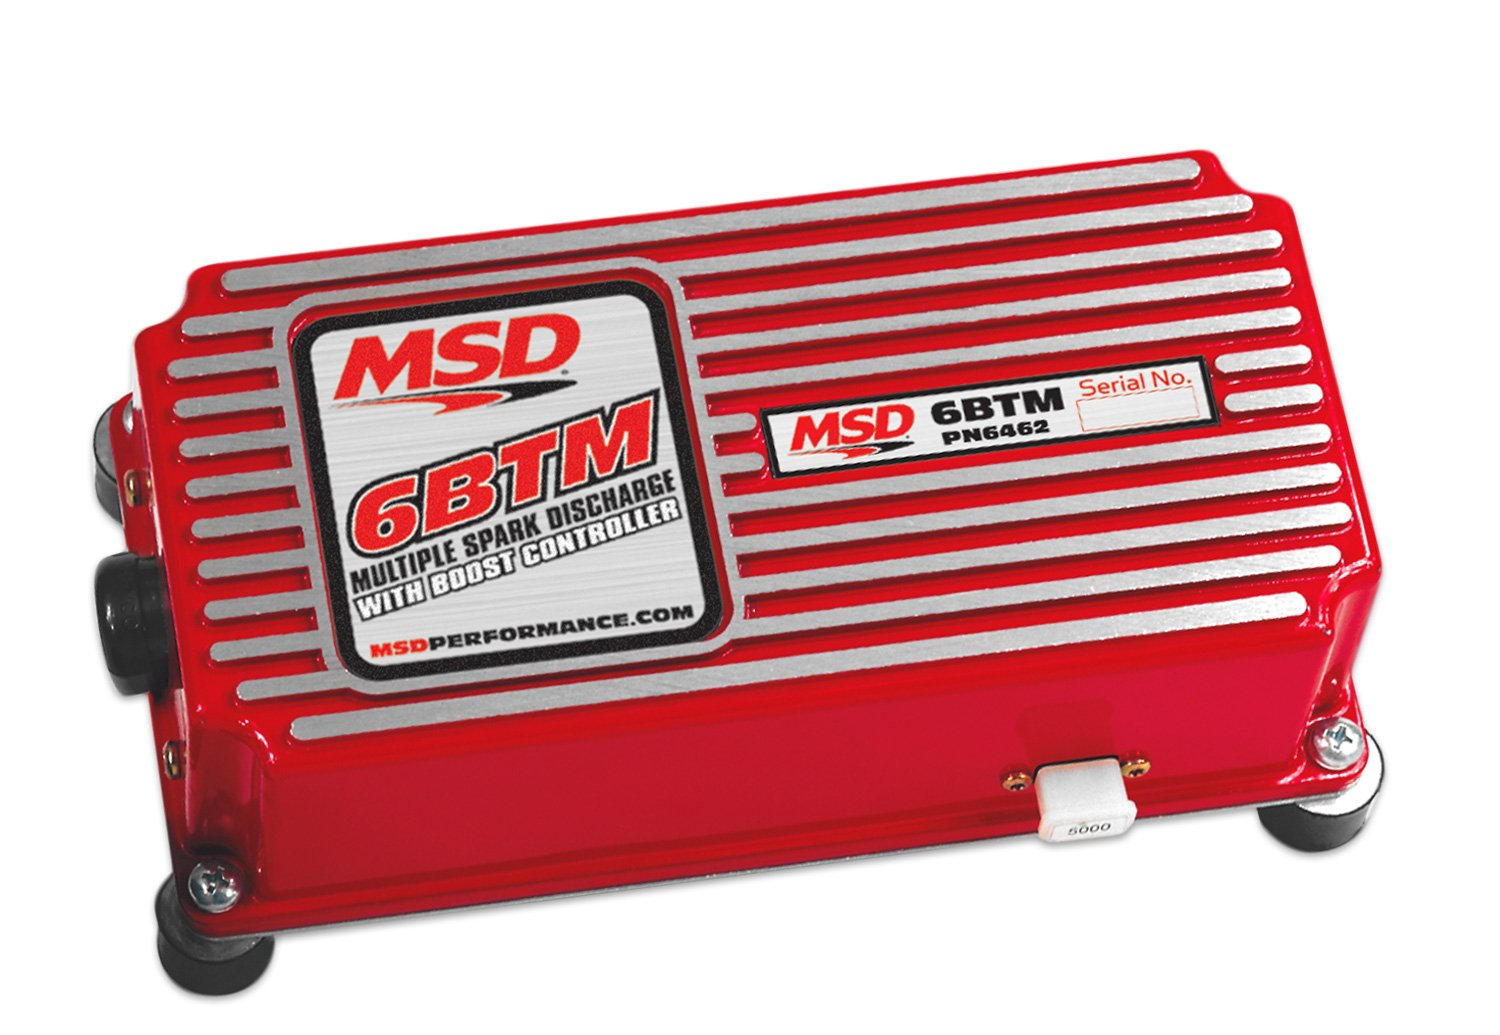 hight resolution of msd 6462 msd 6 btm boost timing master 6021 mallory 6a ignition wiring diagram msd 6btm wiring diagram